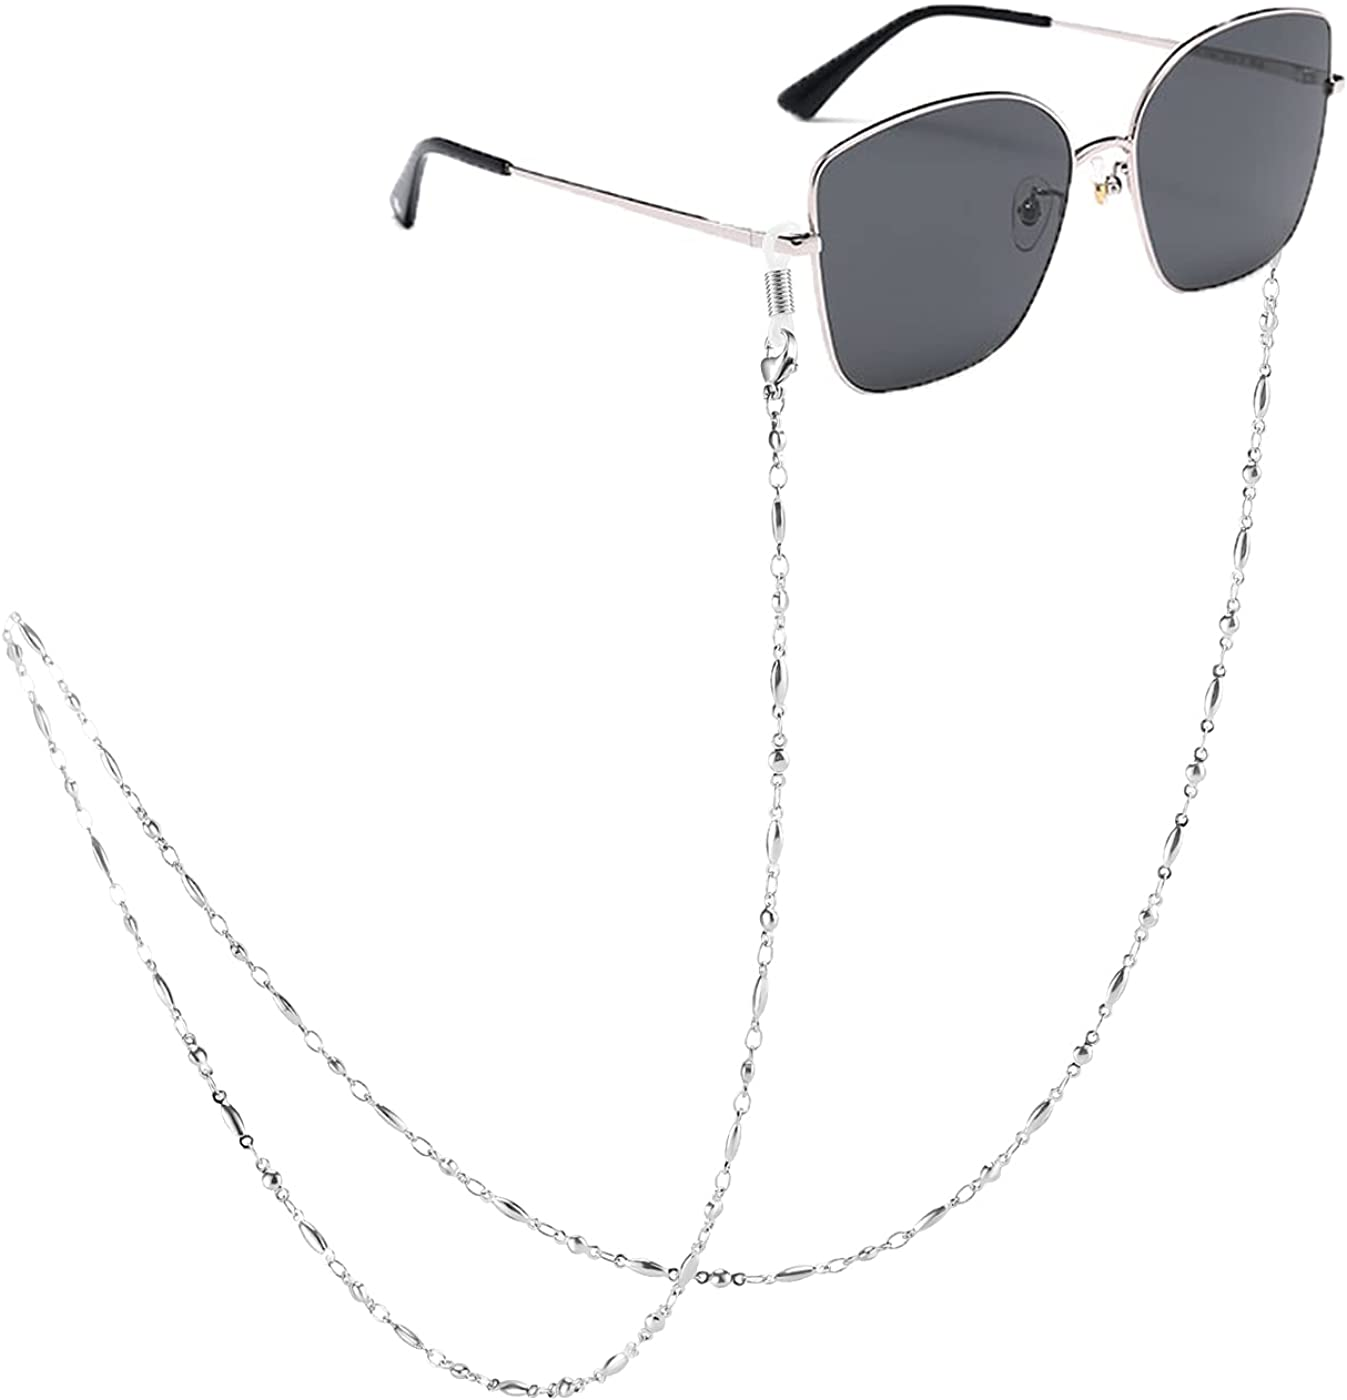 TONY SANDY Eyeglass Chain Al sold out. Necklace Holder 2021 spring and summer new Strap Sunglasses Cor